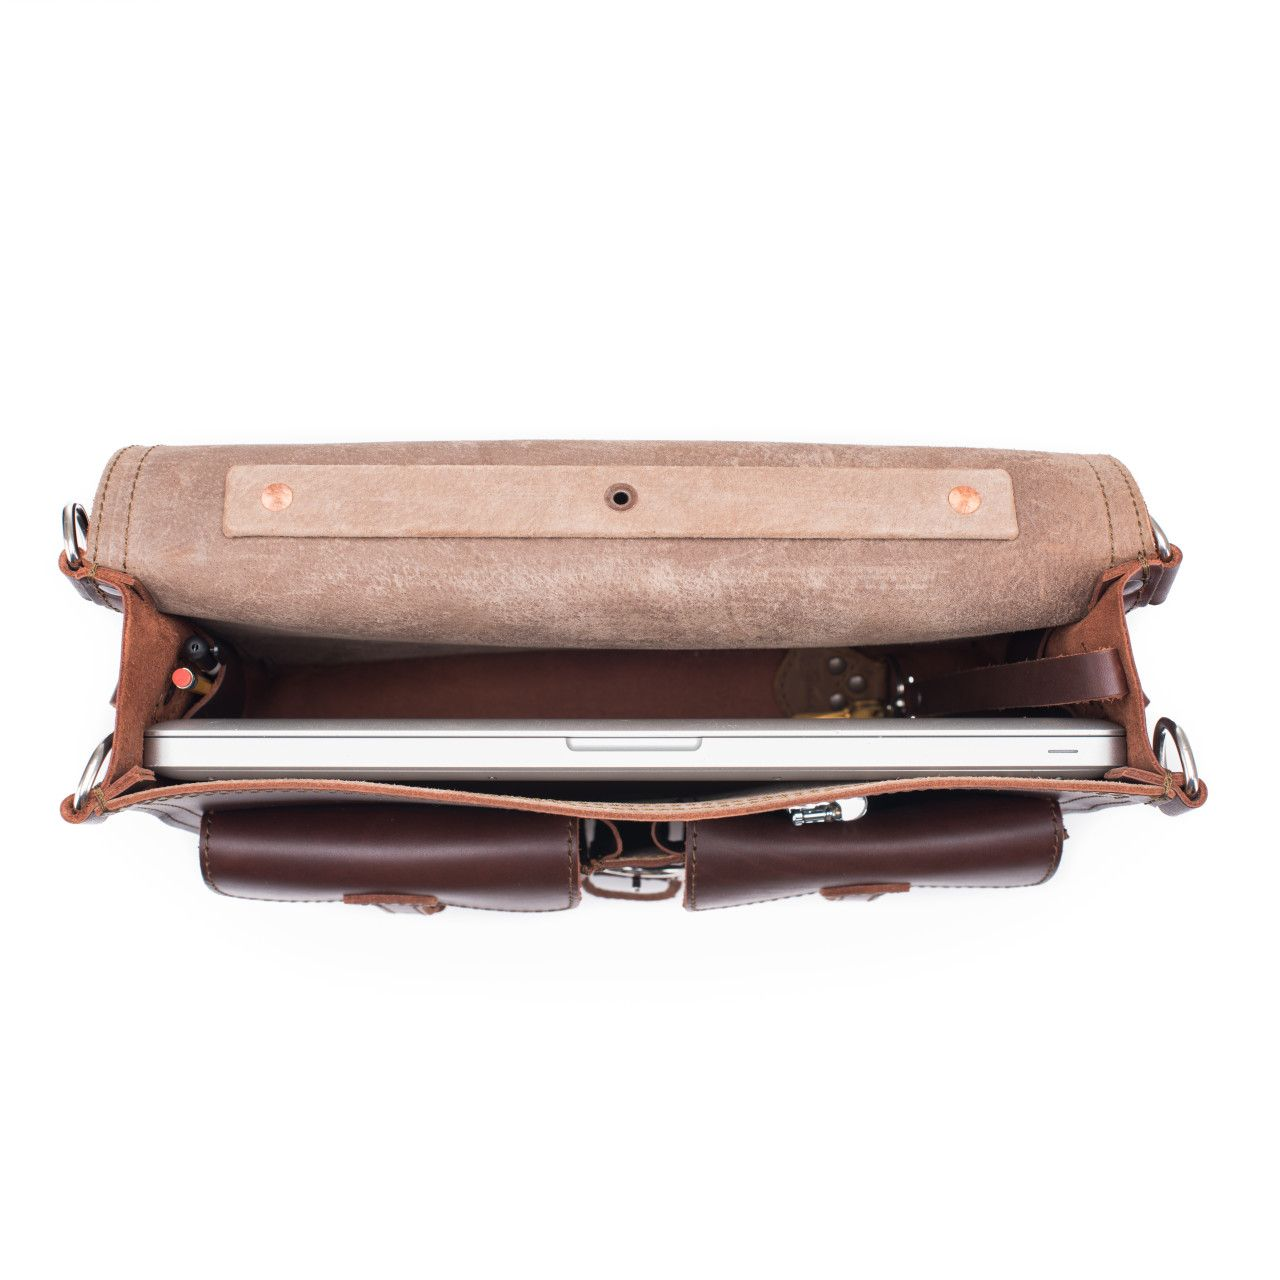 thin front pocket leather briefcase medium in chestnut leather is excellent for a couple of office materials like macbook, etc.